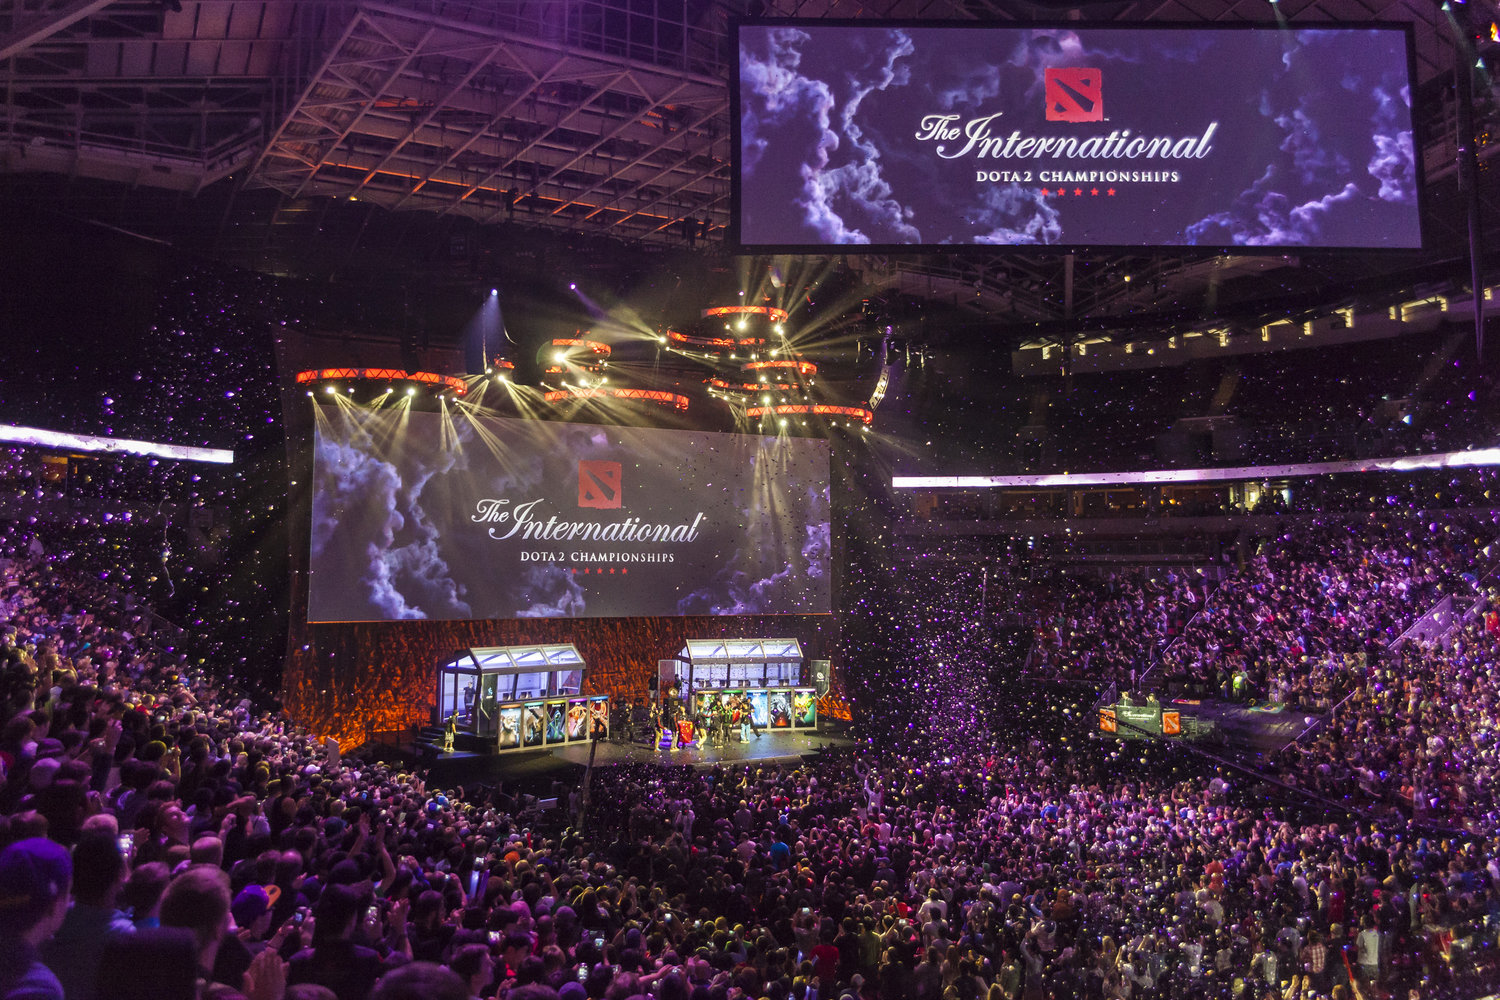 news dota 2 has bigger first prize than the wsop main event